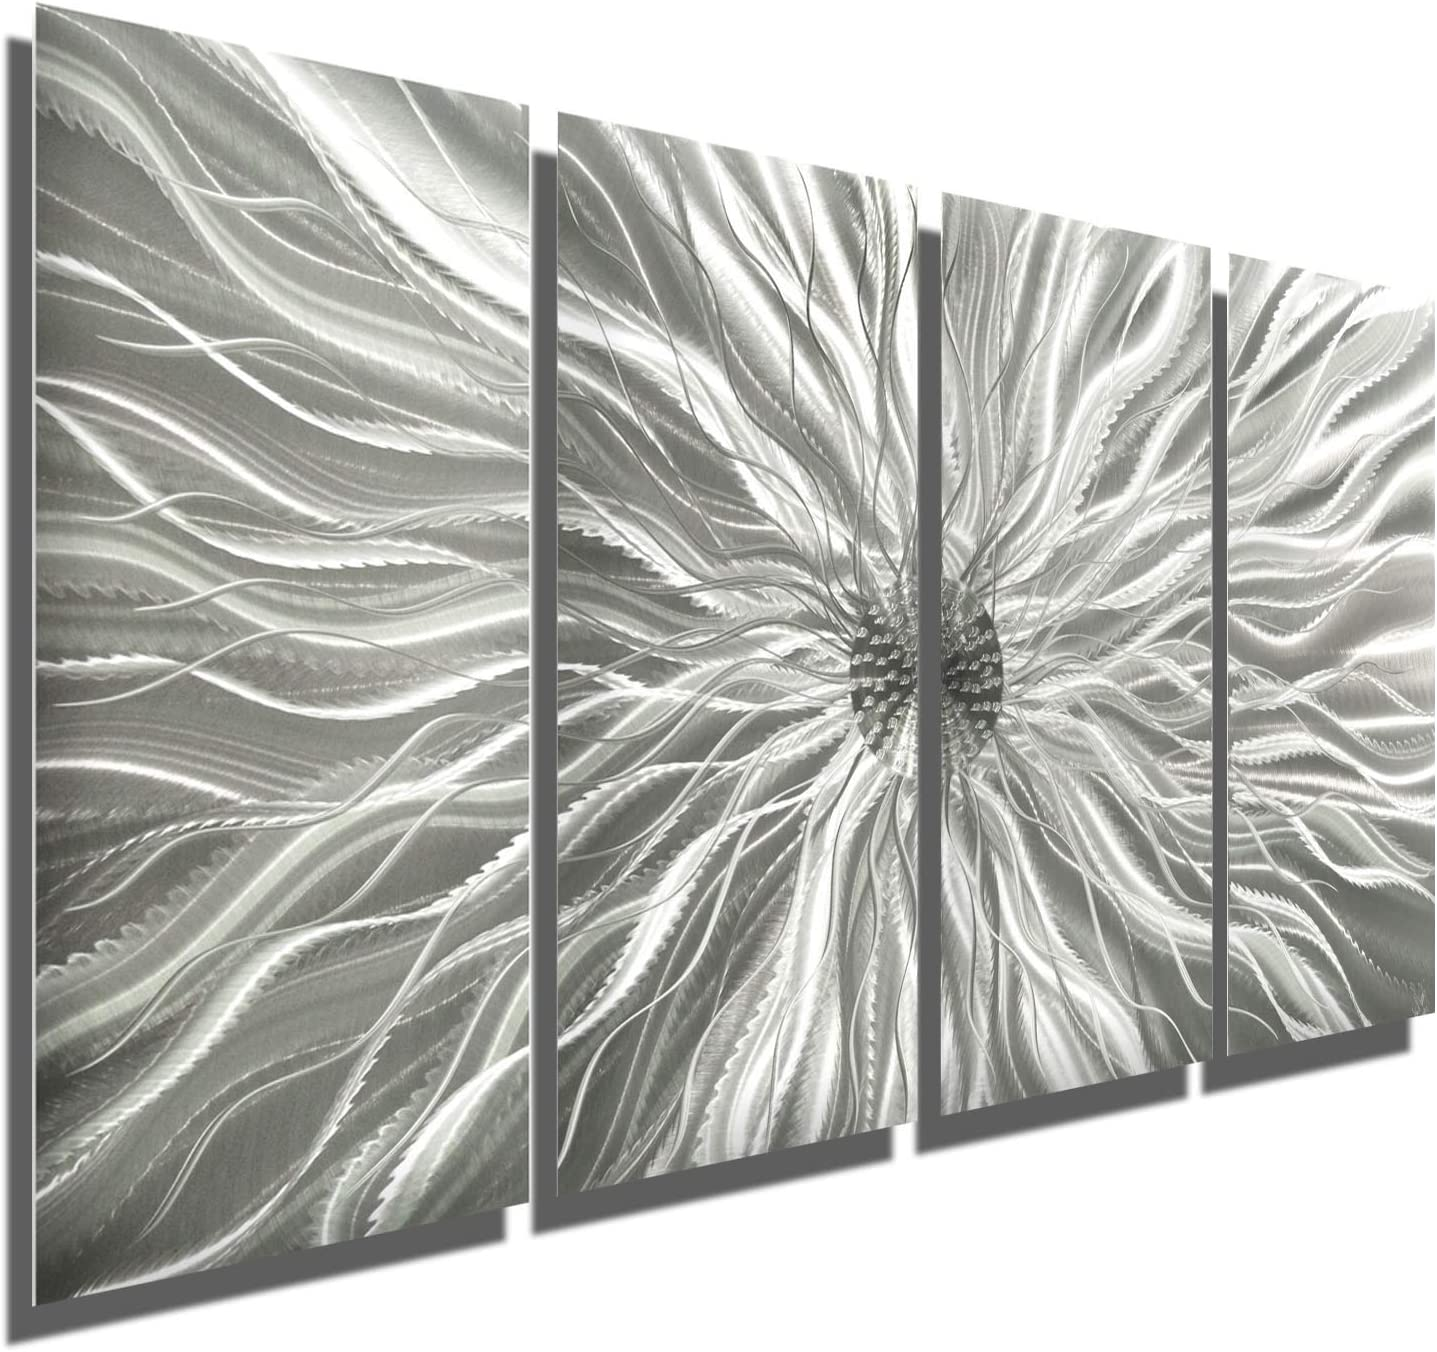 Amazon Com Abstract Silver Metal Wall Art Sculpture Multi Panel Modern Home Décor Static By Jon Allen Home Kitchen